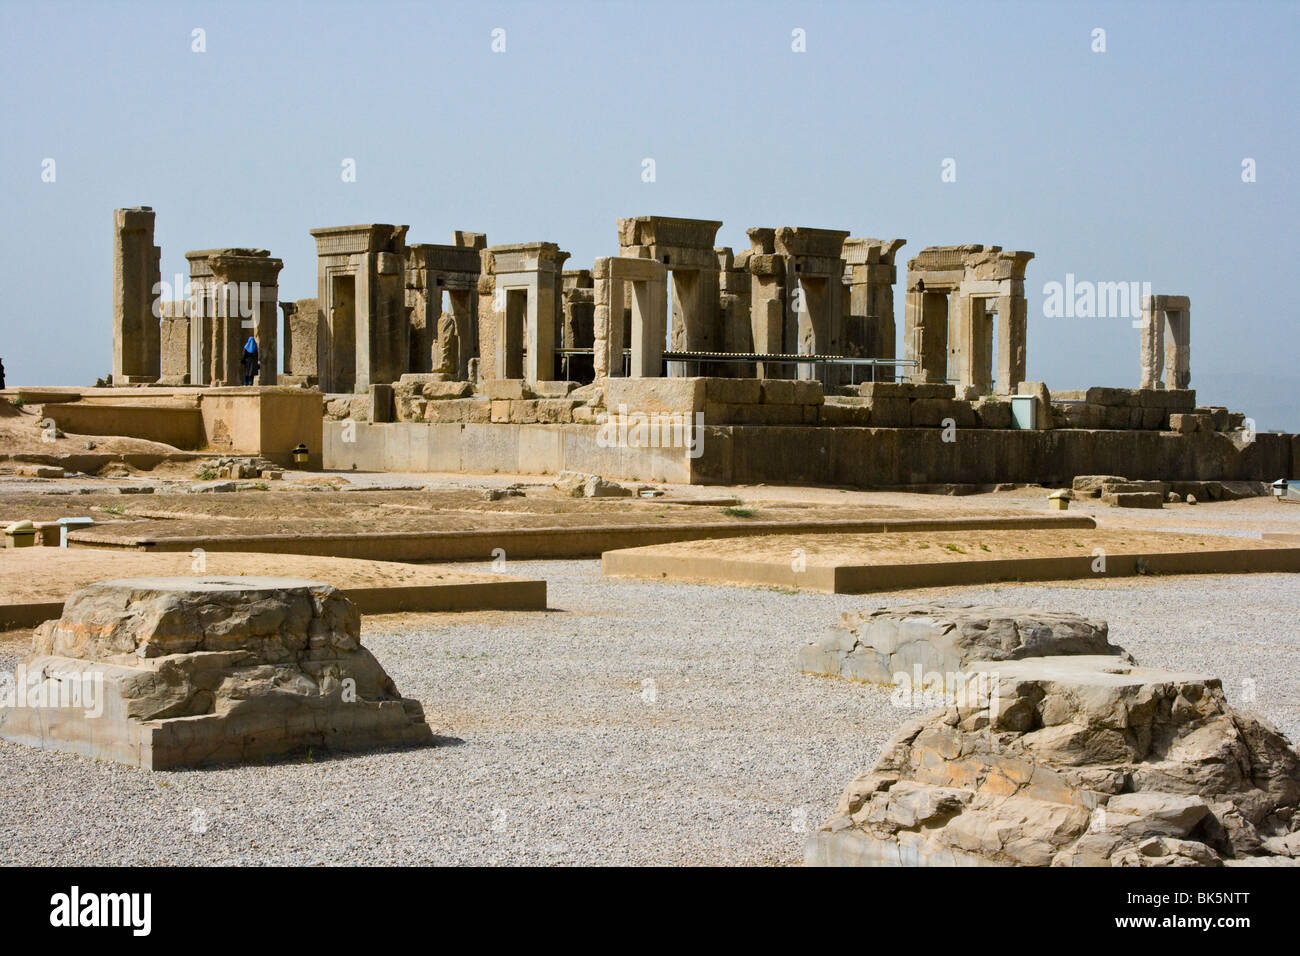 Palace of Darius in Persepolis, Iran - Stock Image